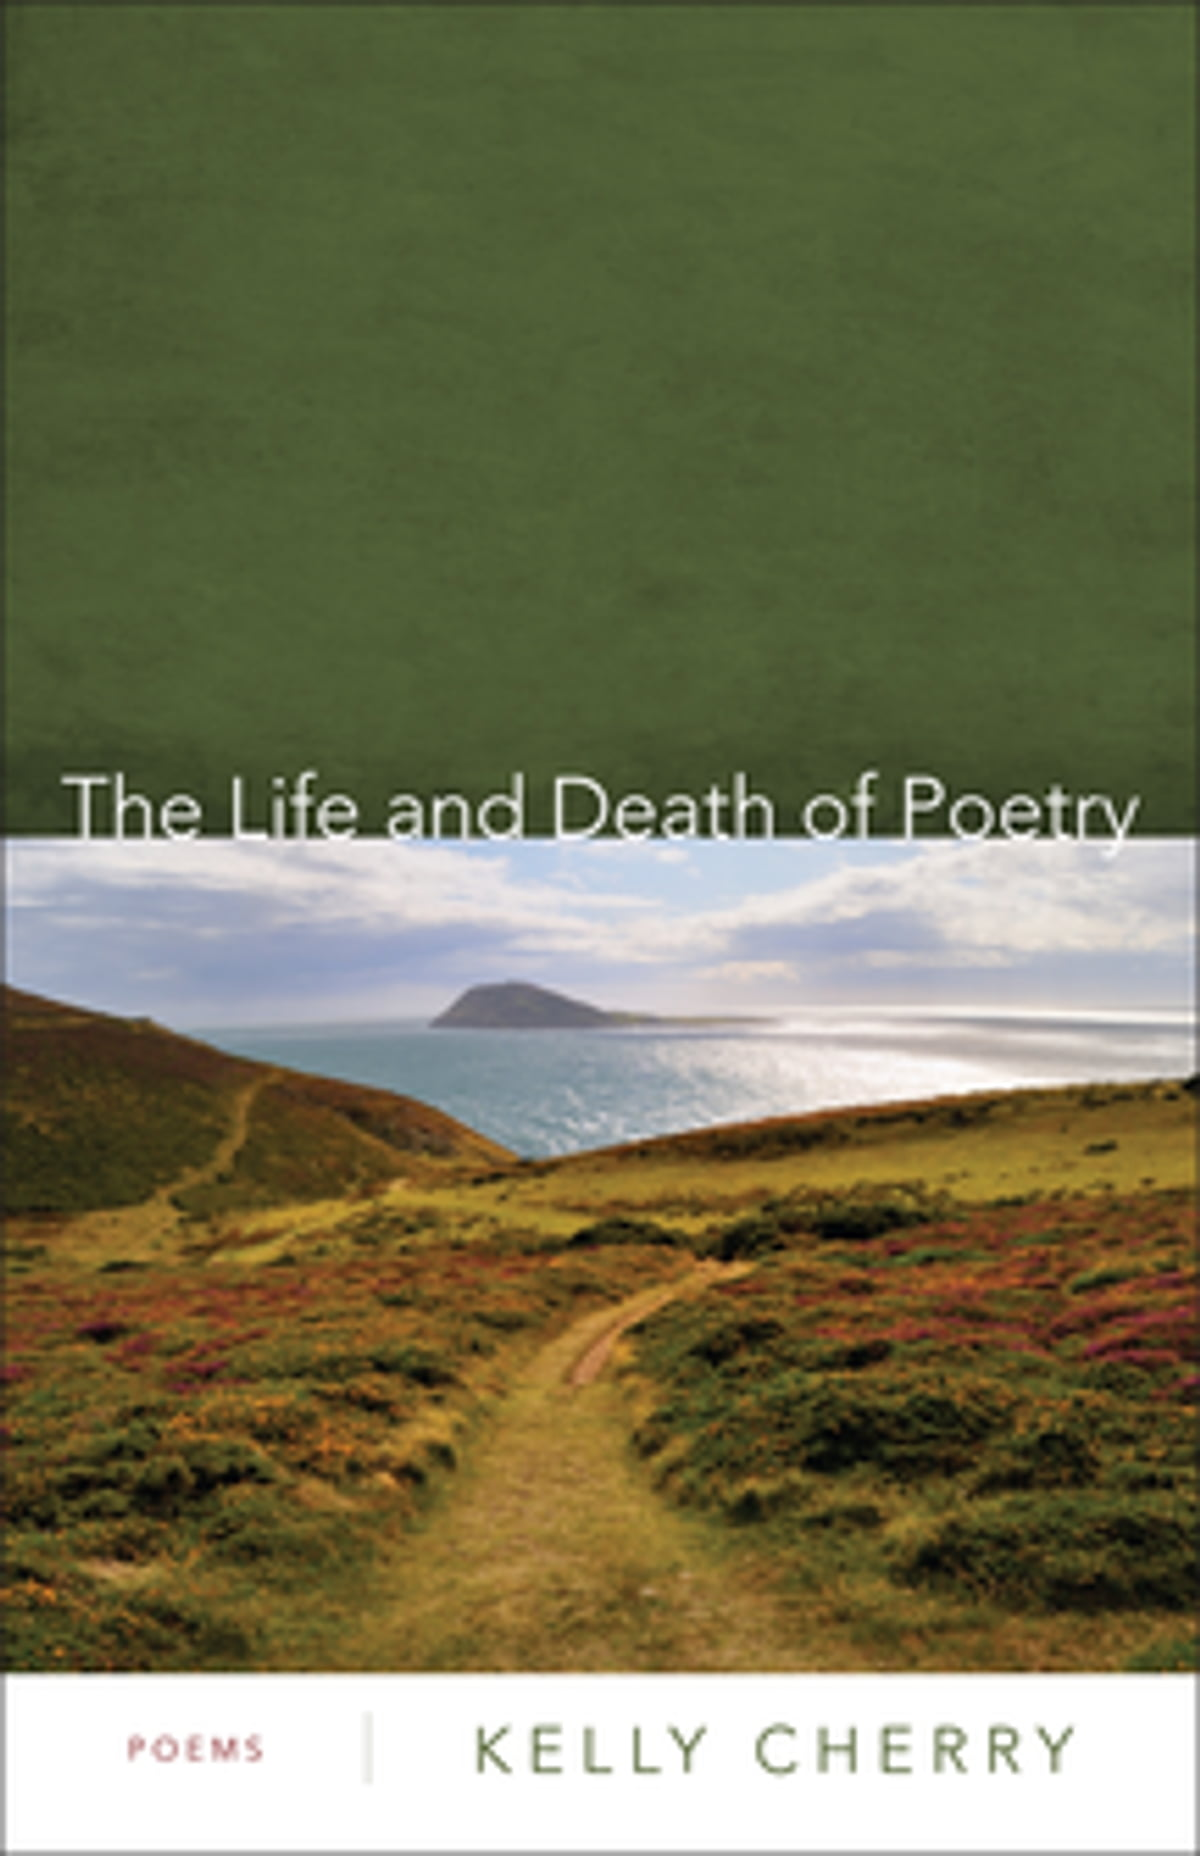 The life and death of poetry ebook by kelly cherry 9780807150443 the life and death of poetry ebook by kelly cherry 9780807150443 rakuten kobo fandeluxe Document